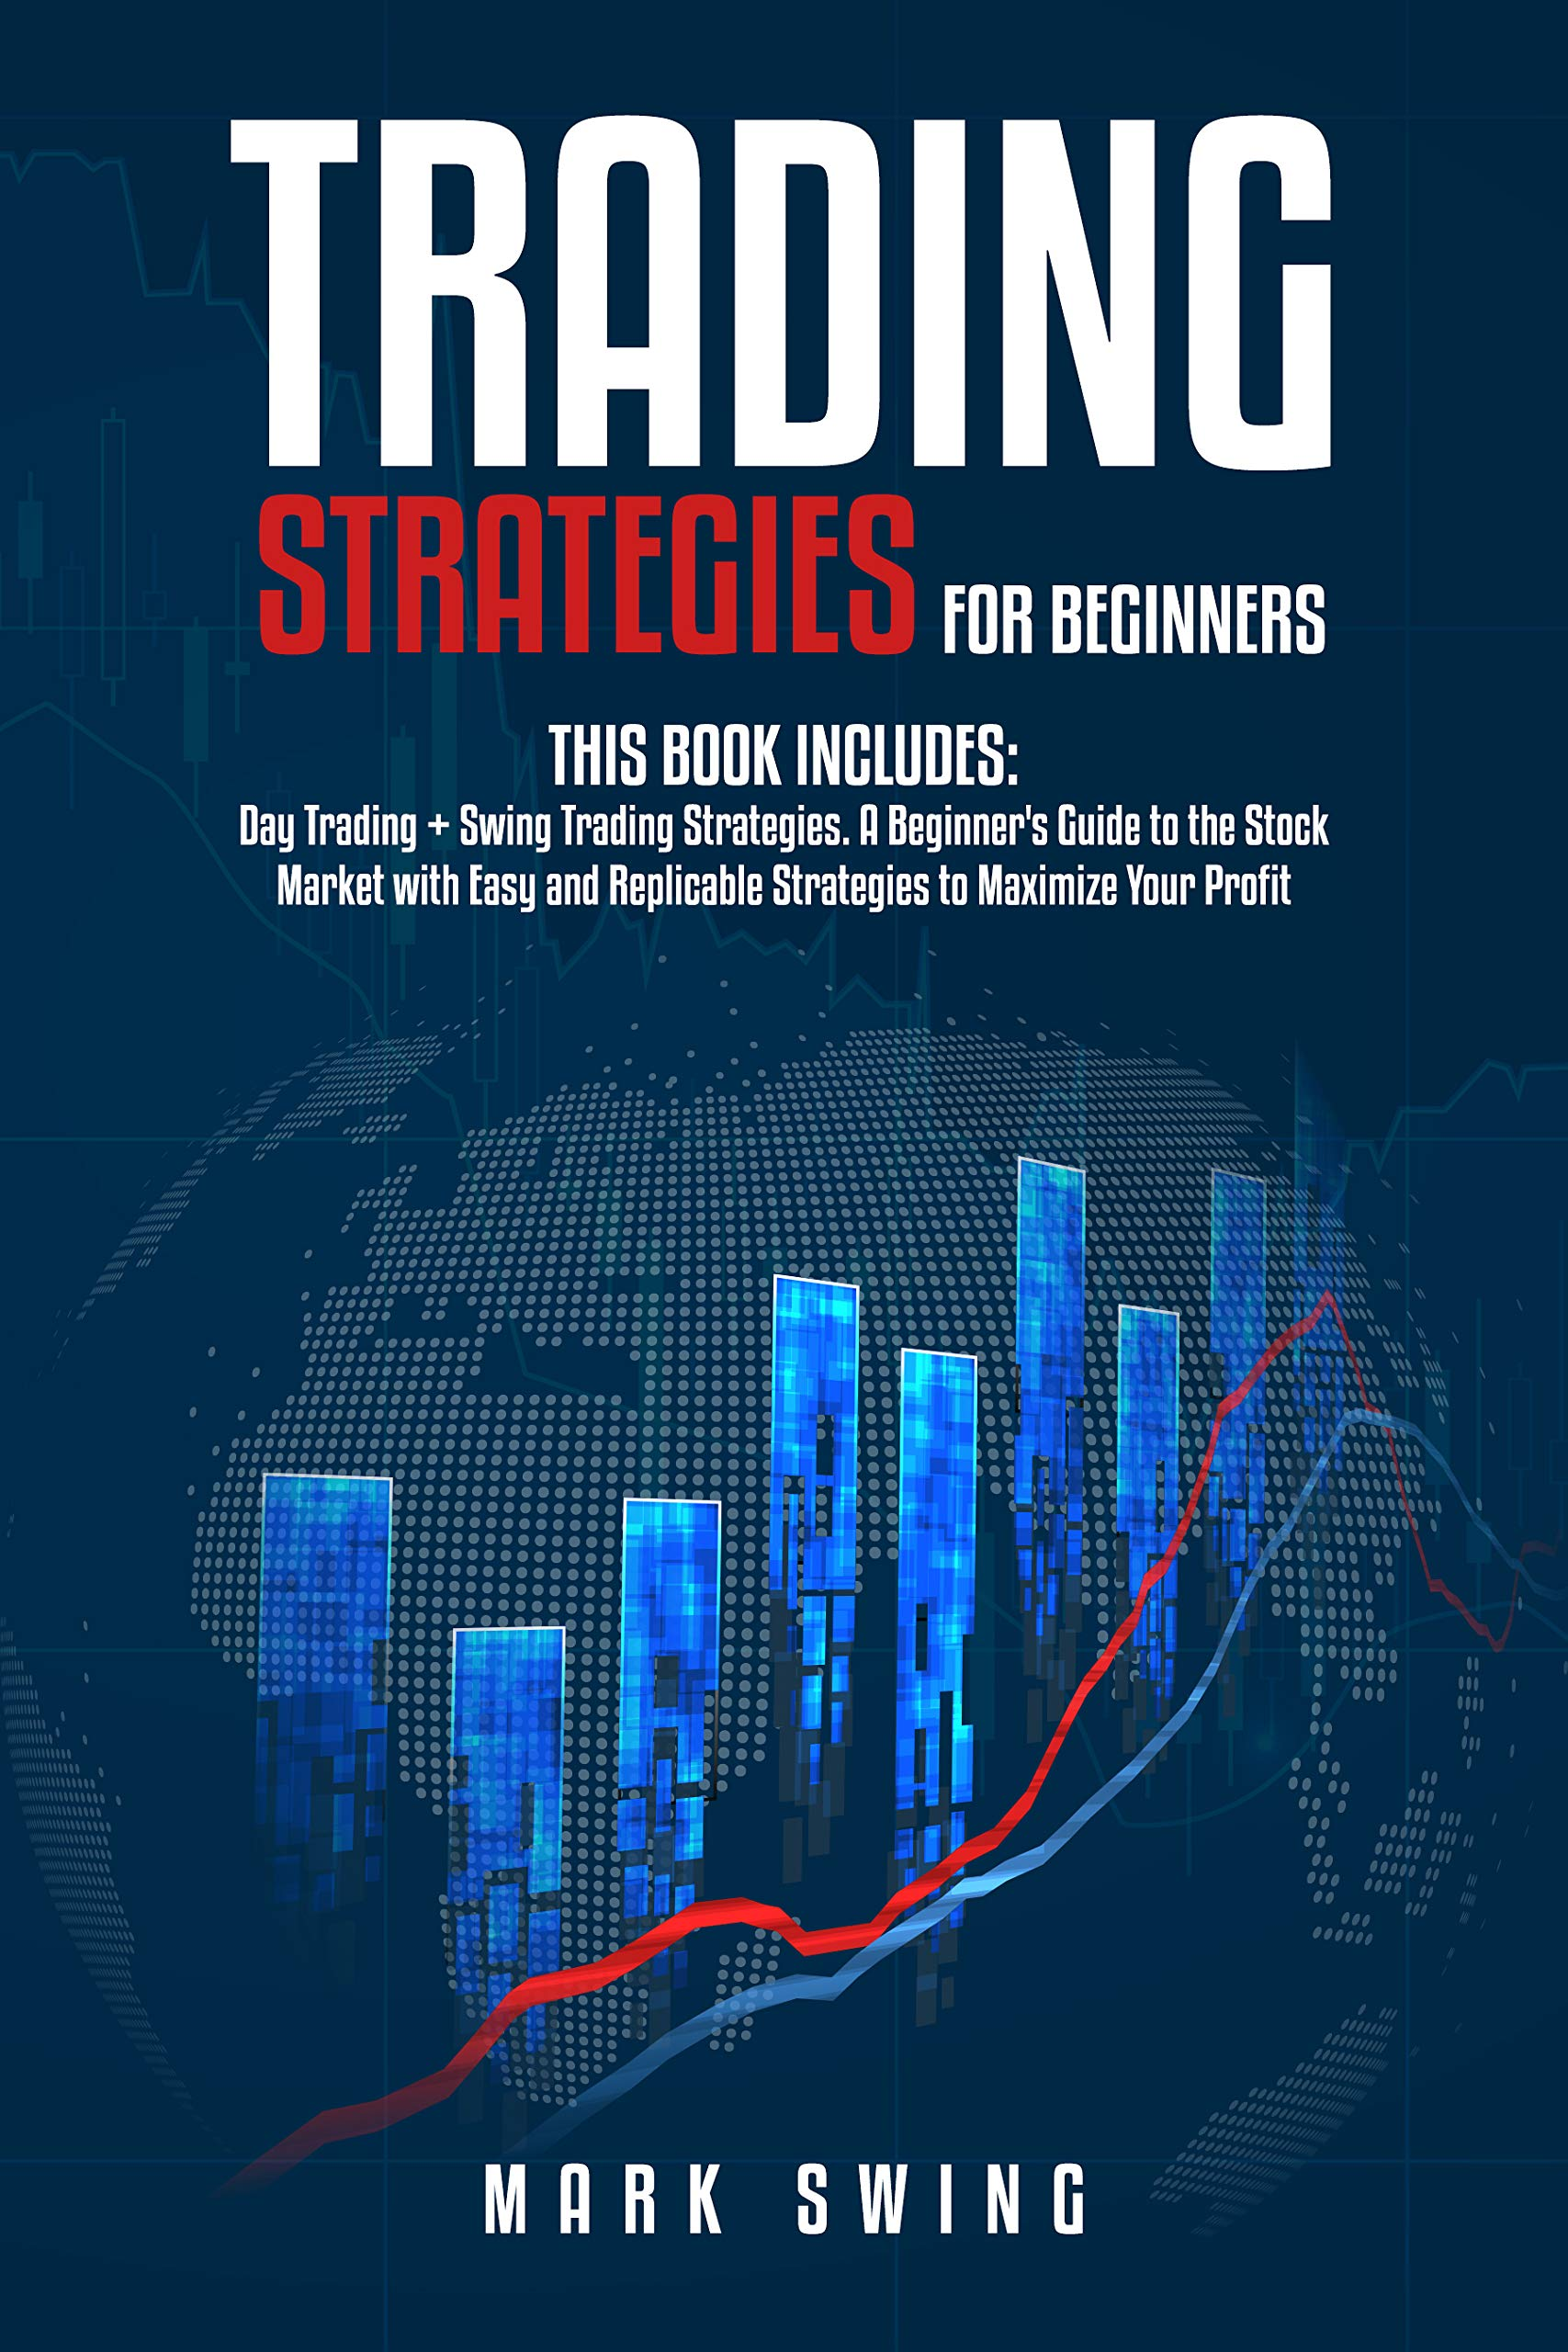 Trading Strategies: Day Trading + Swing Trading Strategies. A Beginner's Guide to the Stock Market with Easy and Replicable Strategies to Maximize Your Profit